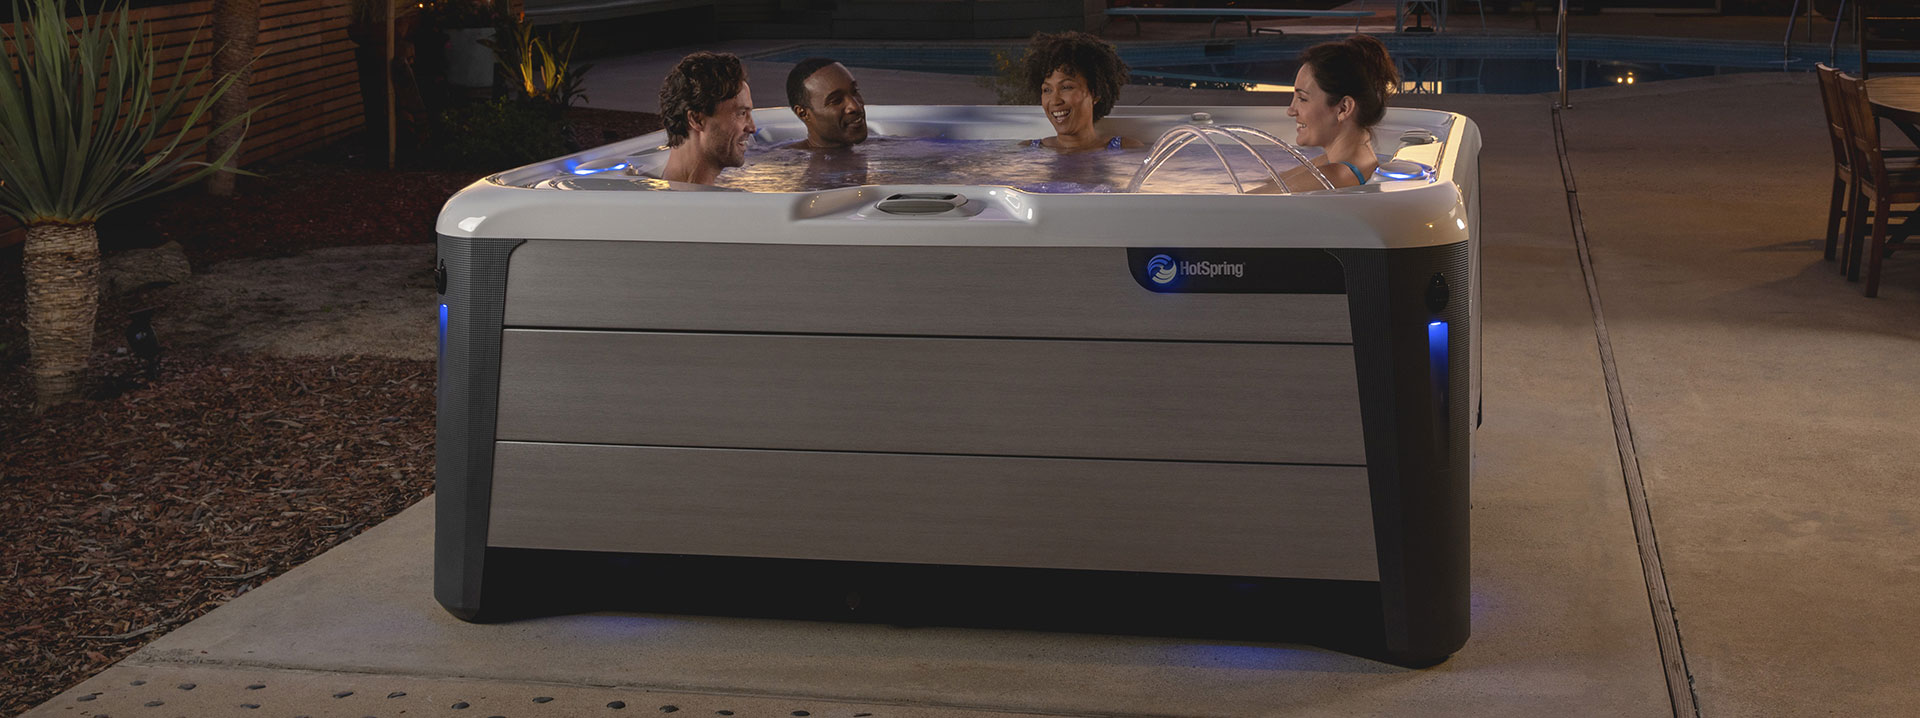 Spa Dealer Offering Hot Tubs for Sale St Louis Shares Social Wellness Tips